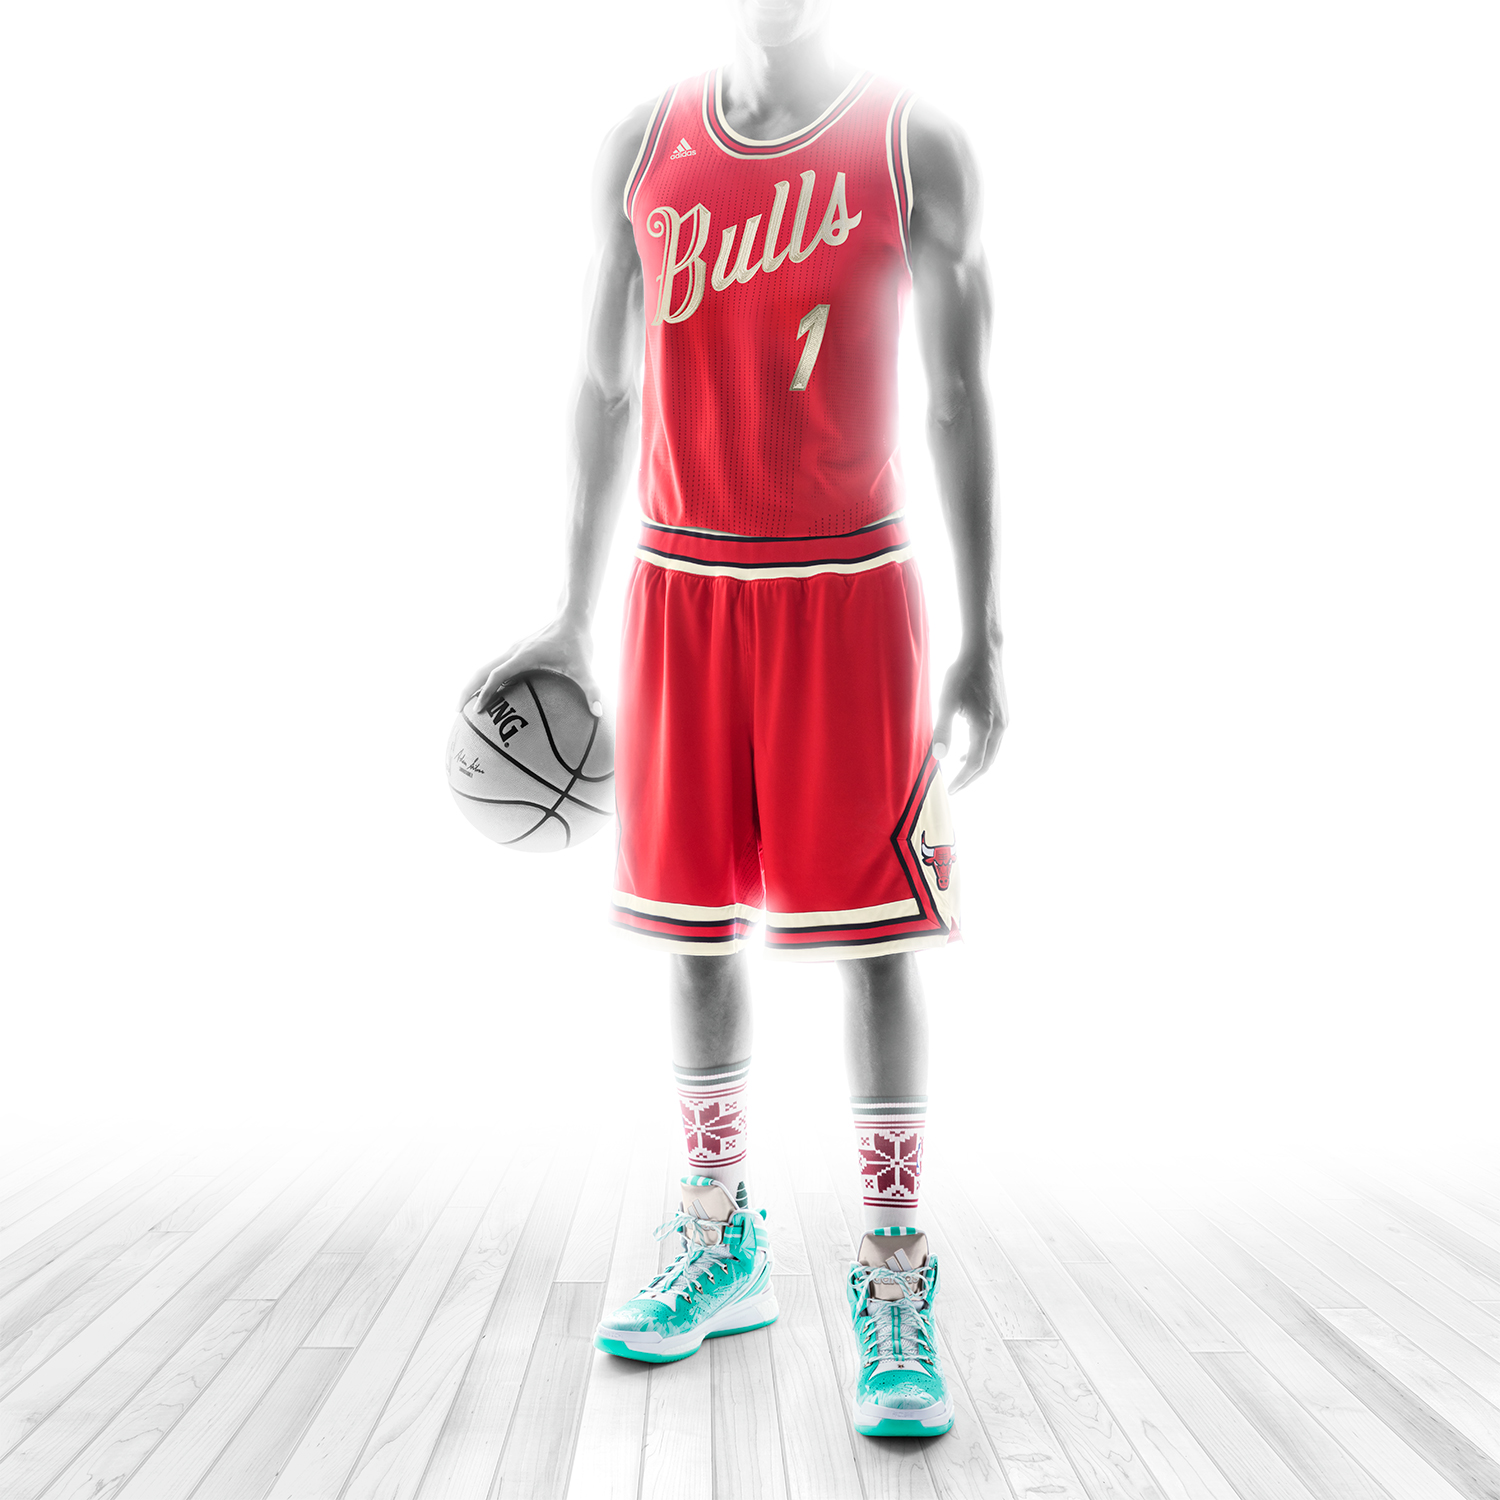 The NBA and adidas Unveil the 2015 NBA Christmas Day Games Uniforms ... 9edece8d0